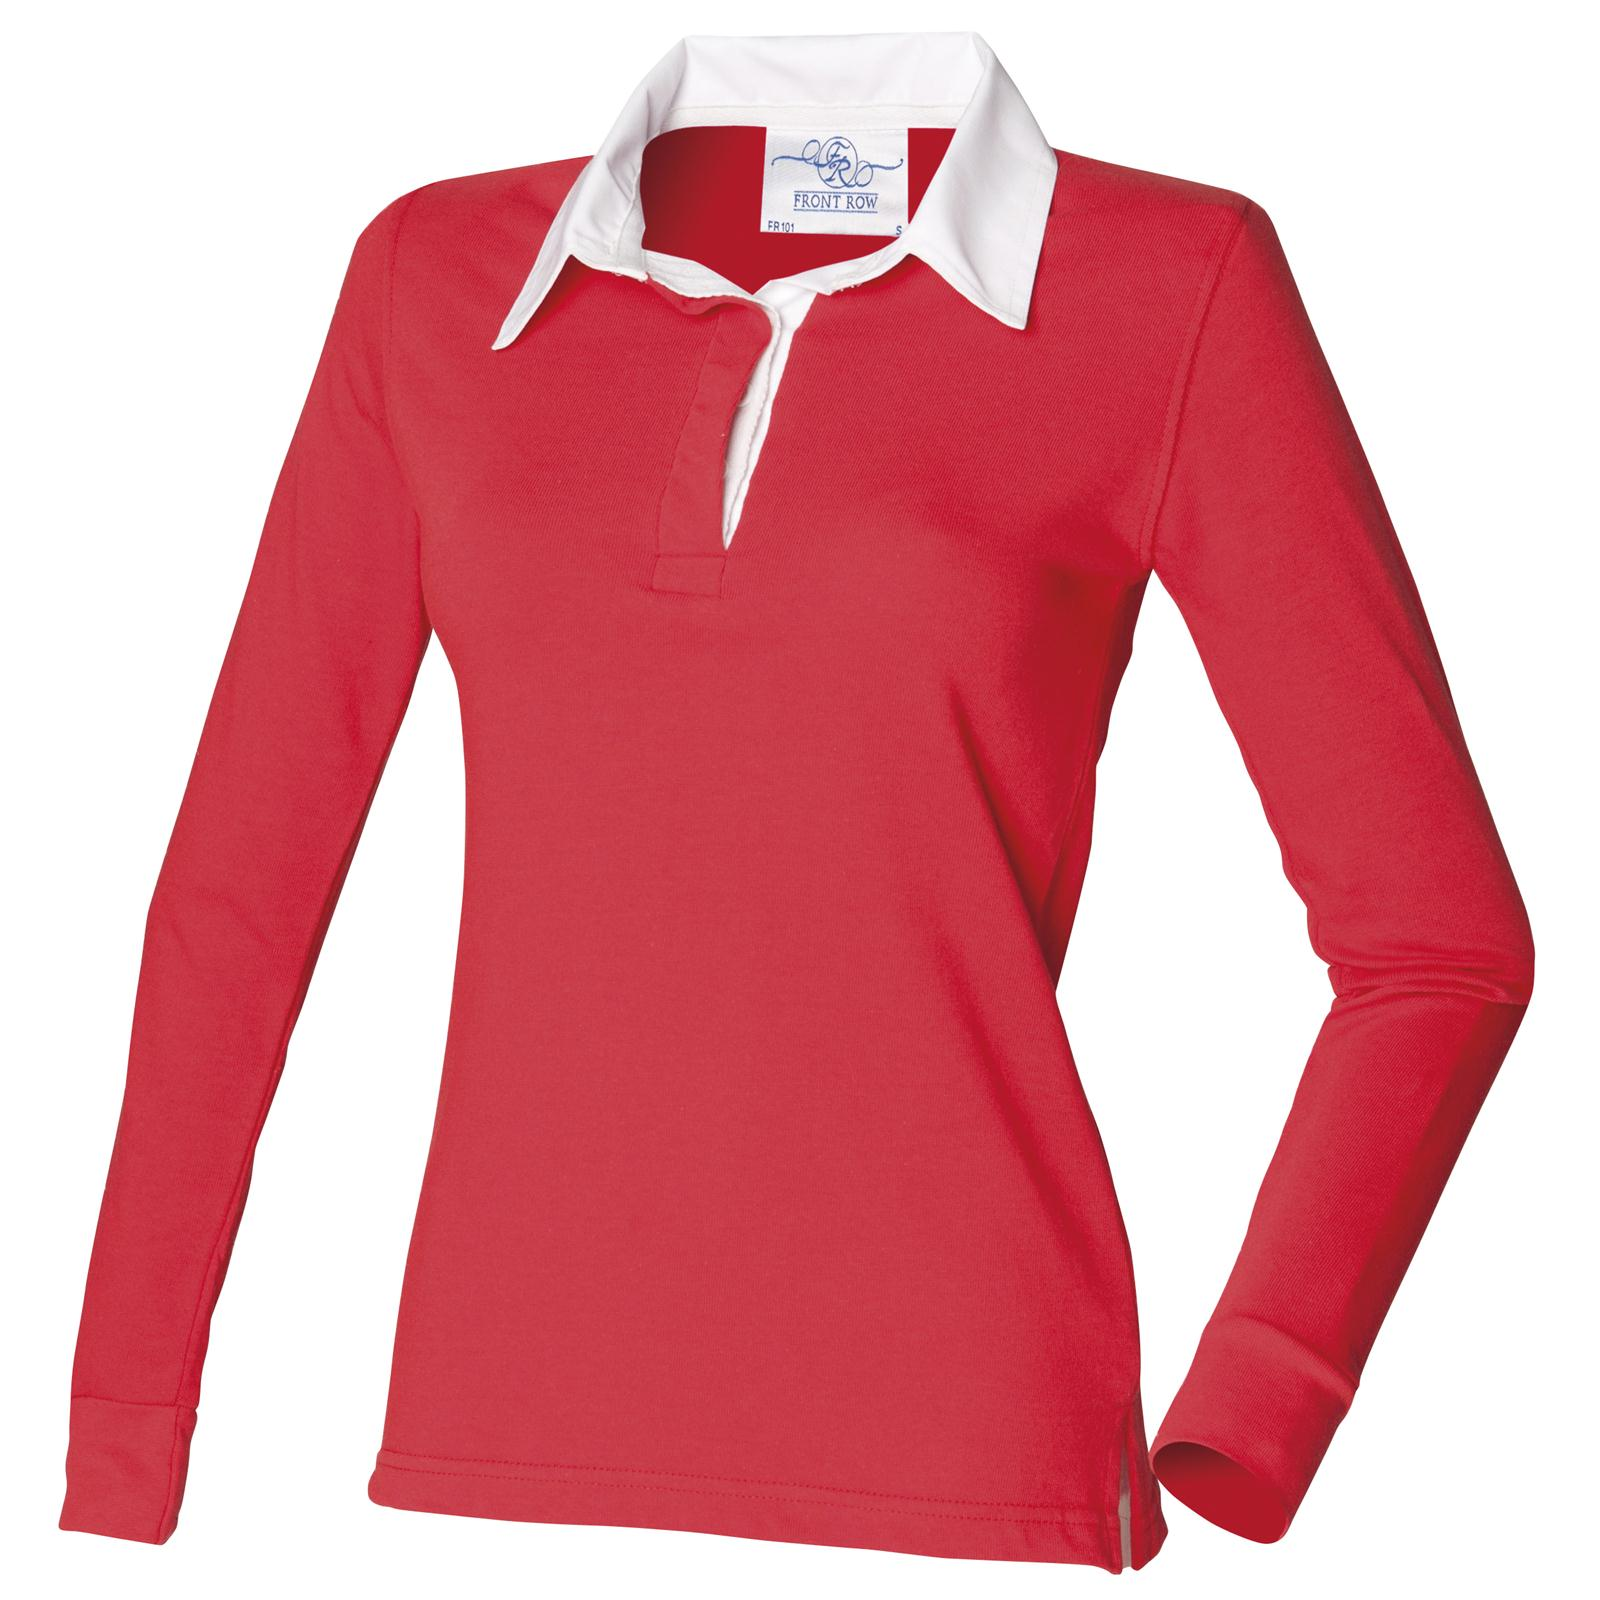 New Front Row Womens Ladies Long Sleeve Plain Rugby Style